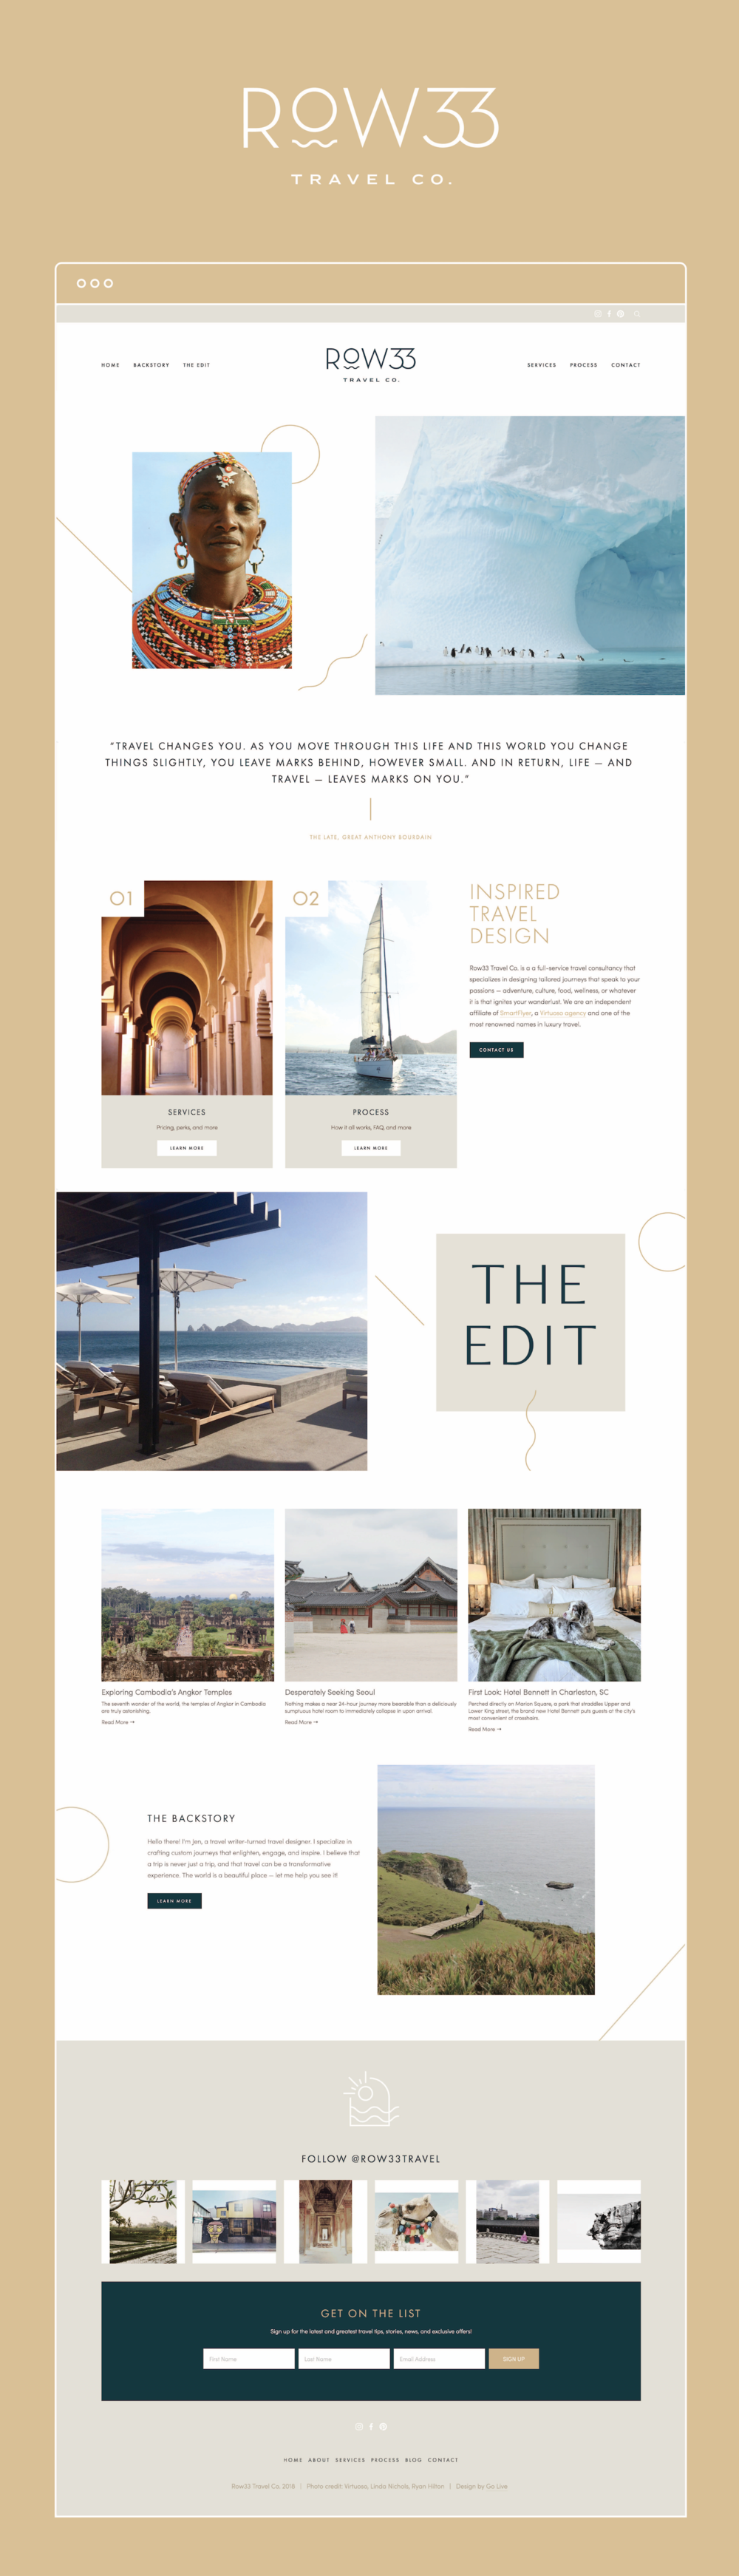 Minimal,+Organic,+Travel-Inspired+Squarespace+Website+Design+For+Row33+Travel+_+By+GoLive.png